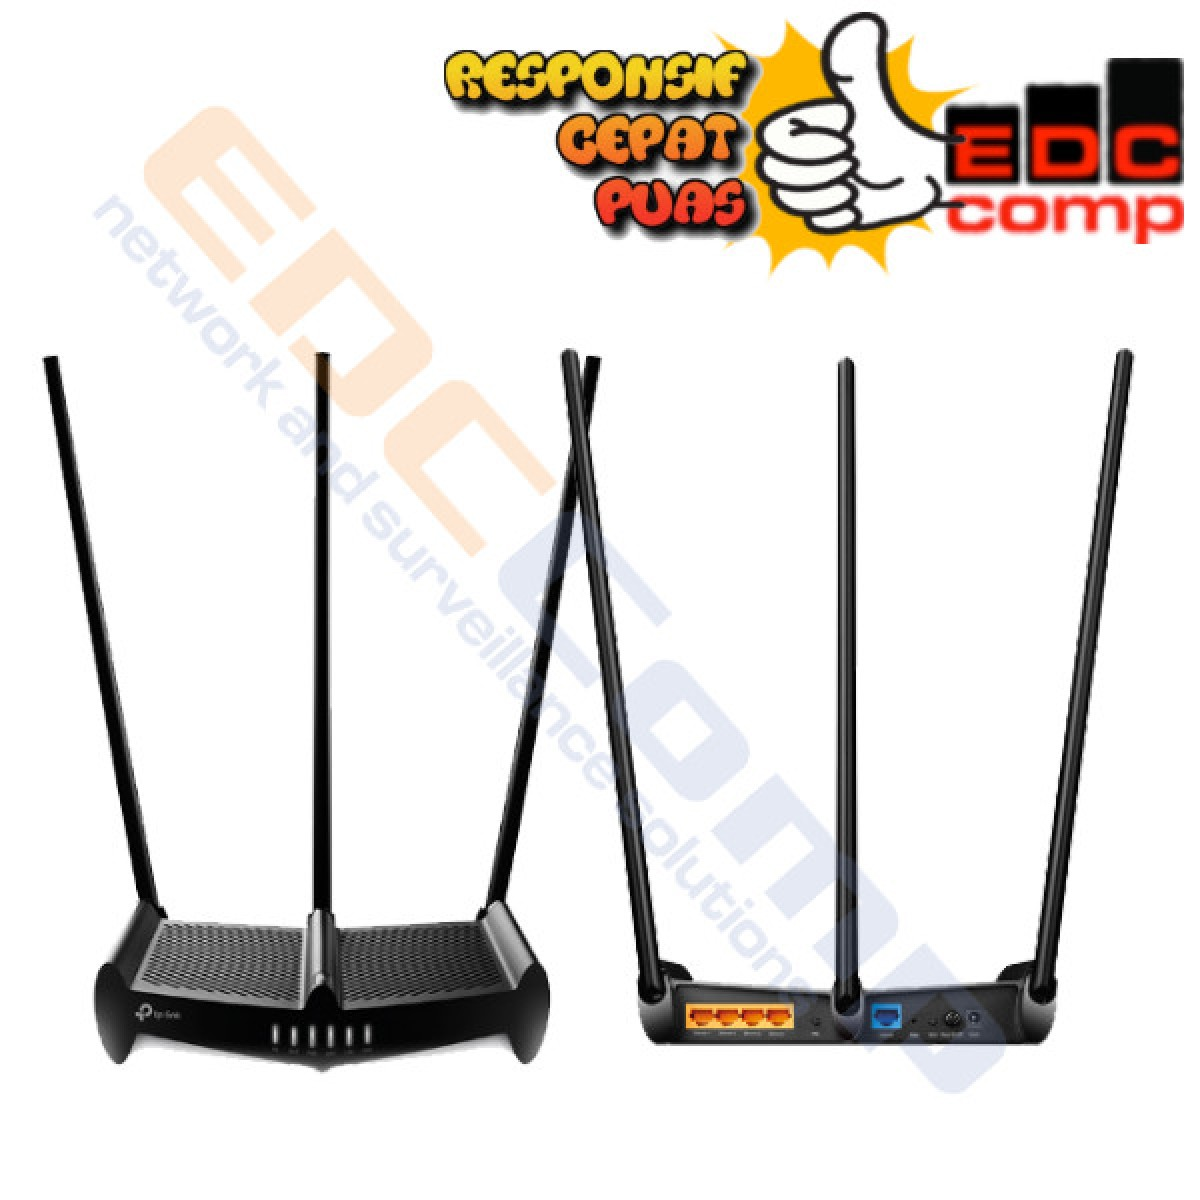 TP-LINK TL-WR941HP 450 Mbps High Power Wireless N Router TP LINK - EdcComp